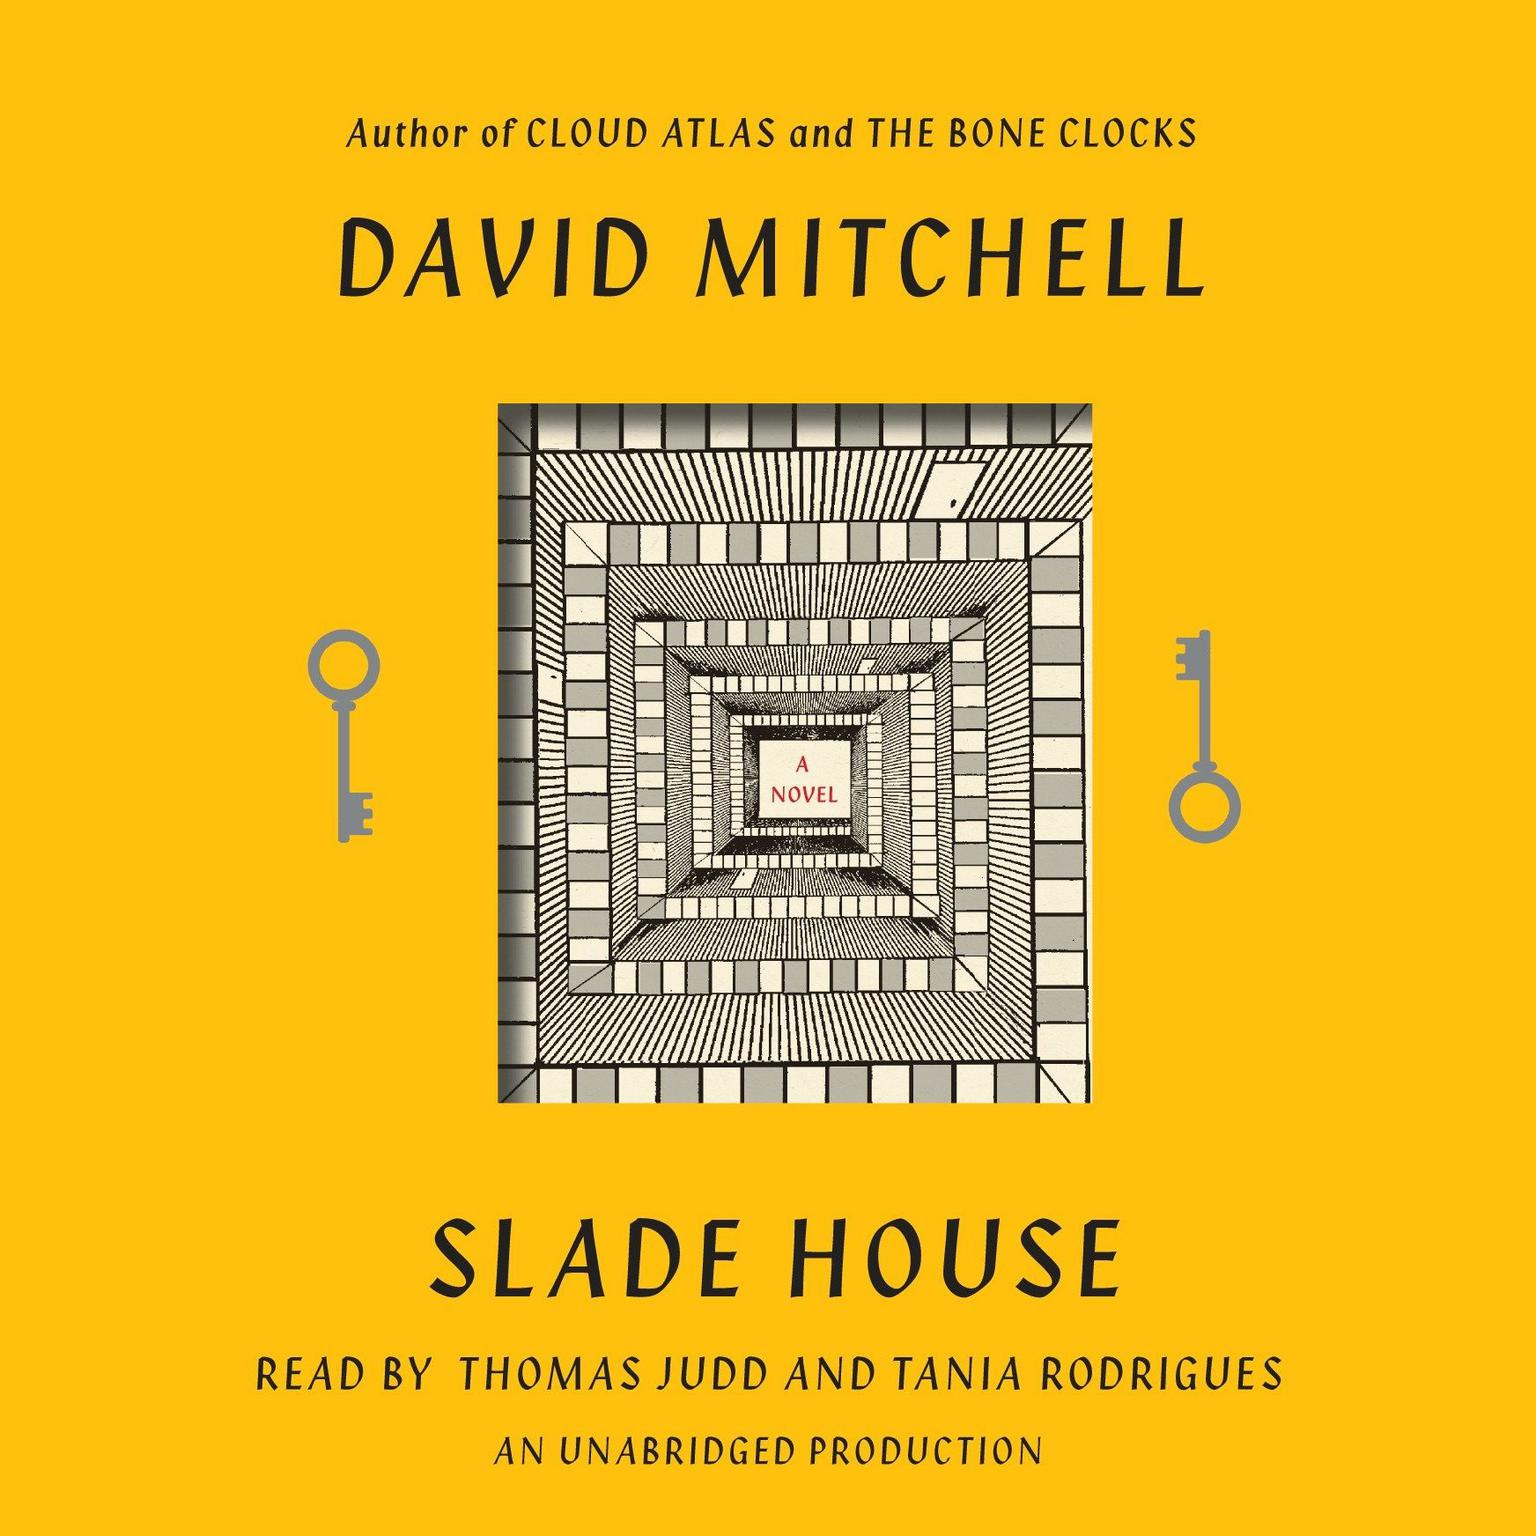 Download Slade House Audiobook by David Mitchell for just 595